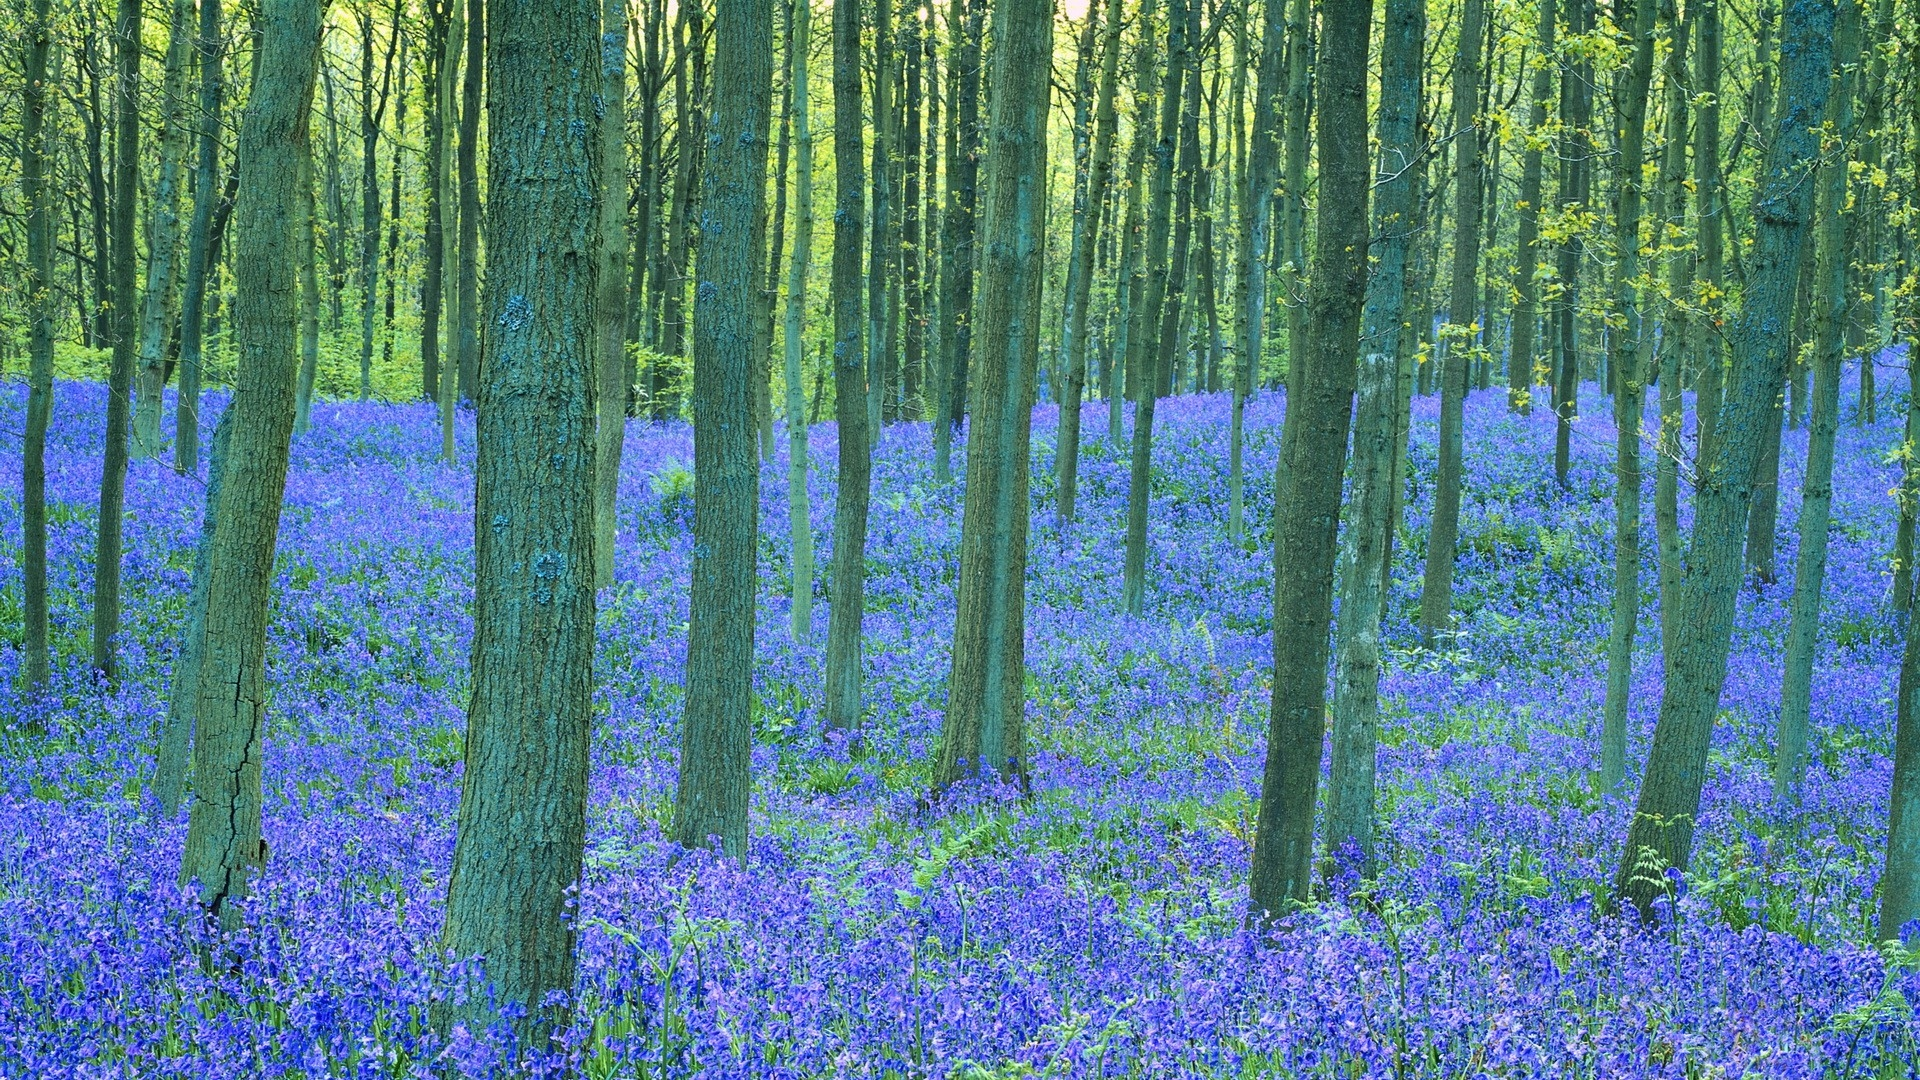 bluebell photo